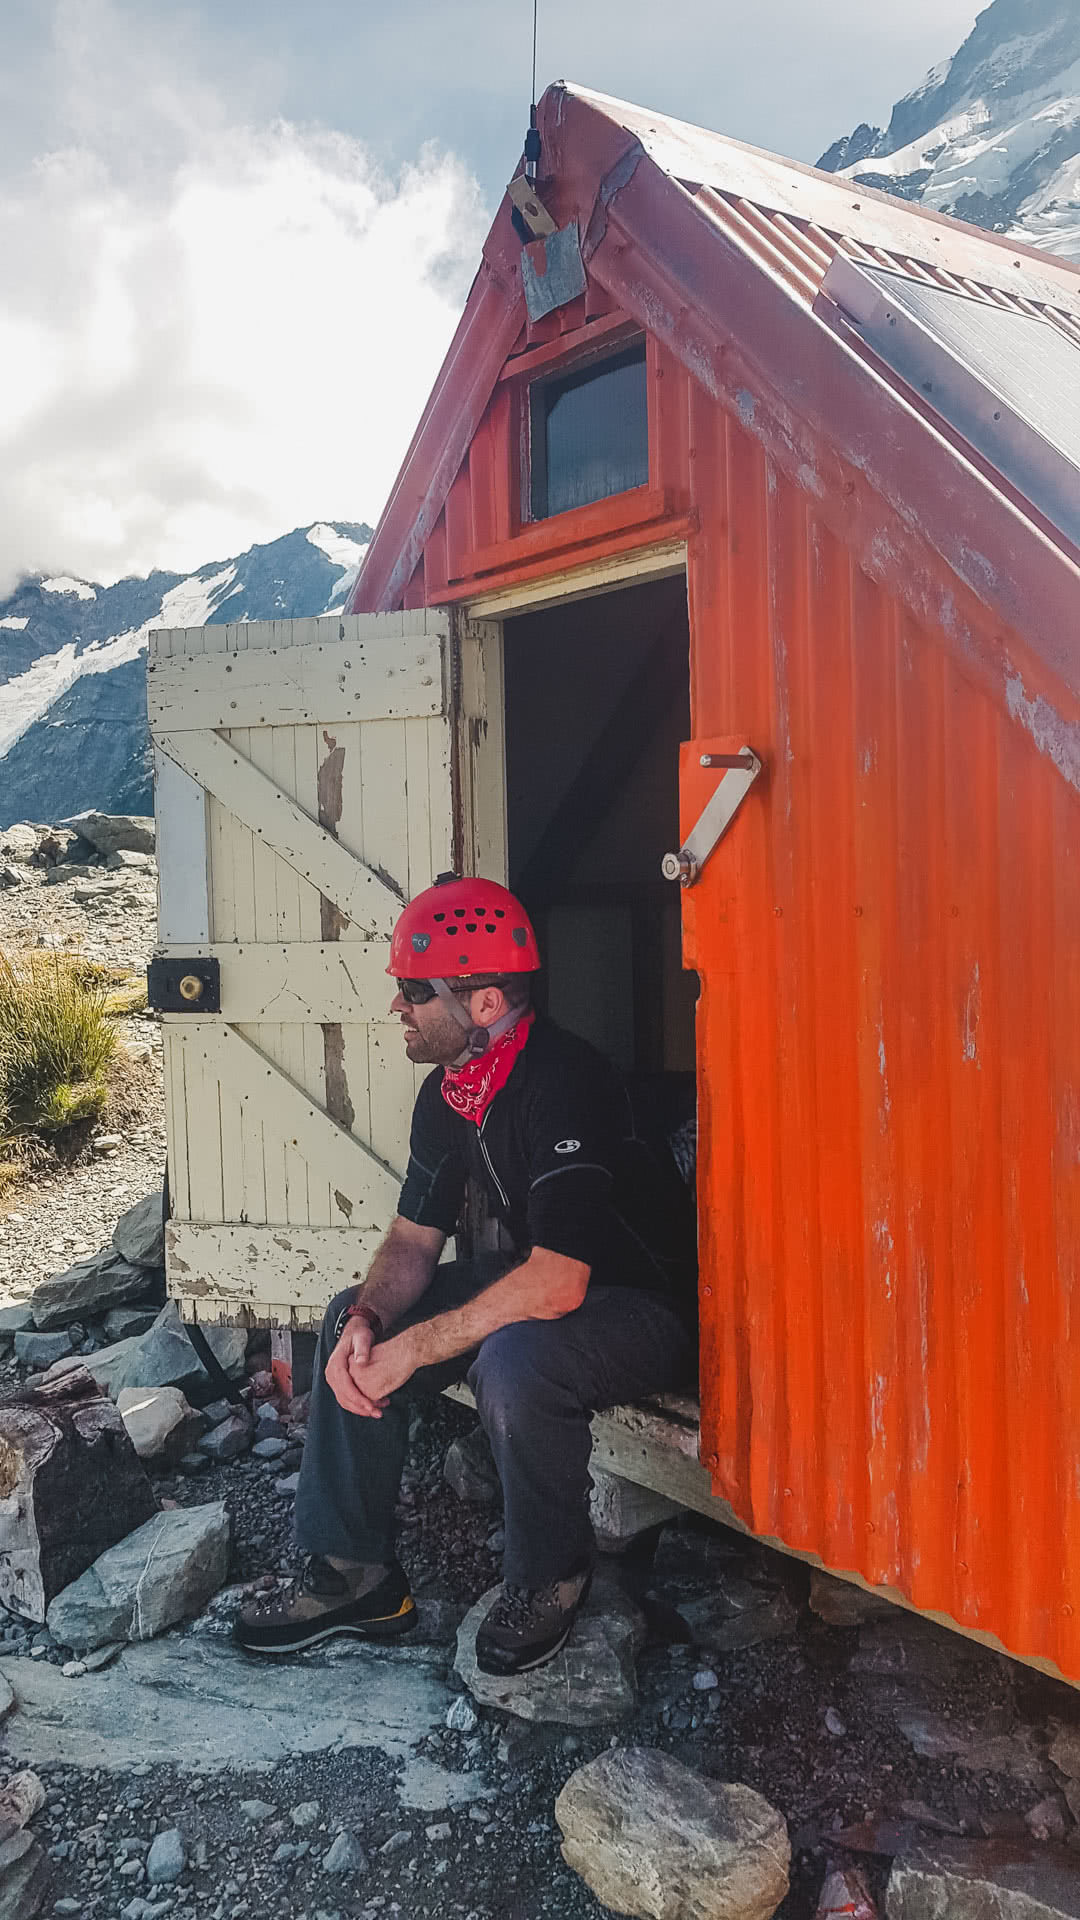 The Sefton Bivvy Route is Far Above the Aoraki Crowds (NZ), Nick Baulch, Mt Cook, hut, man, mountain, hike, mountaineering